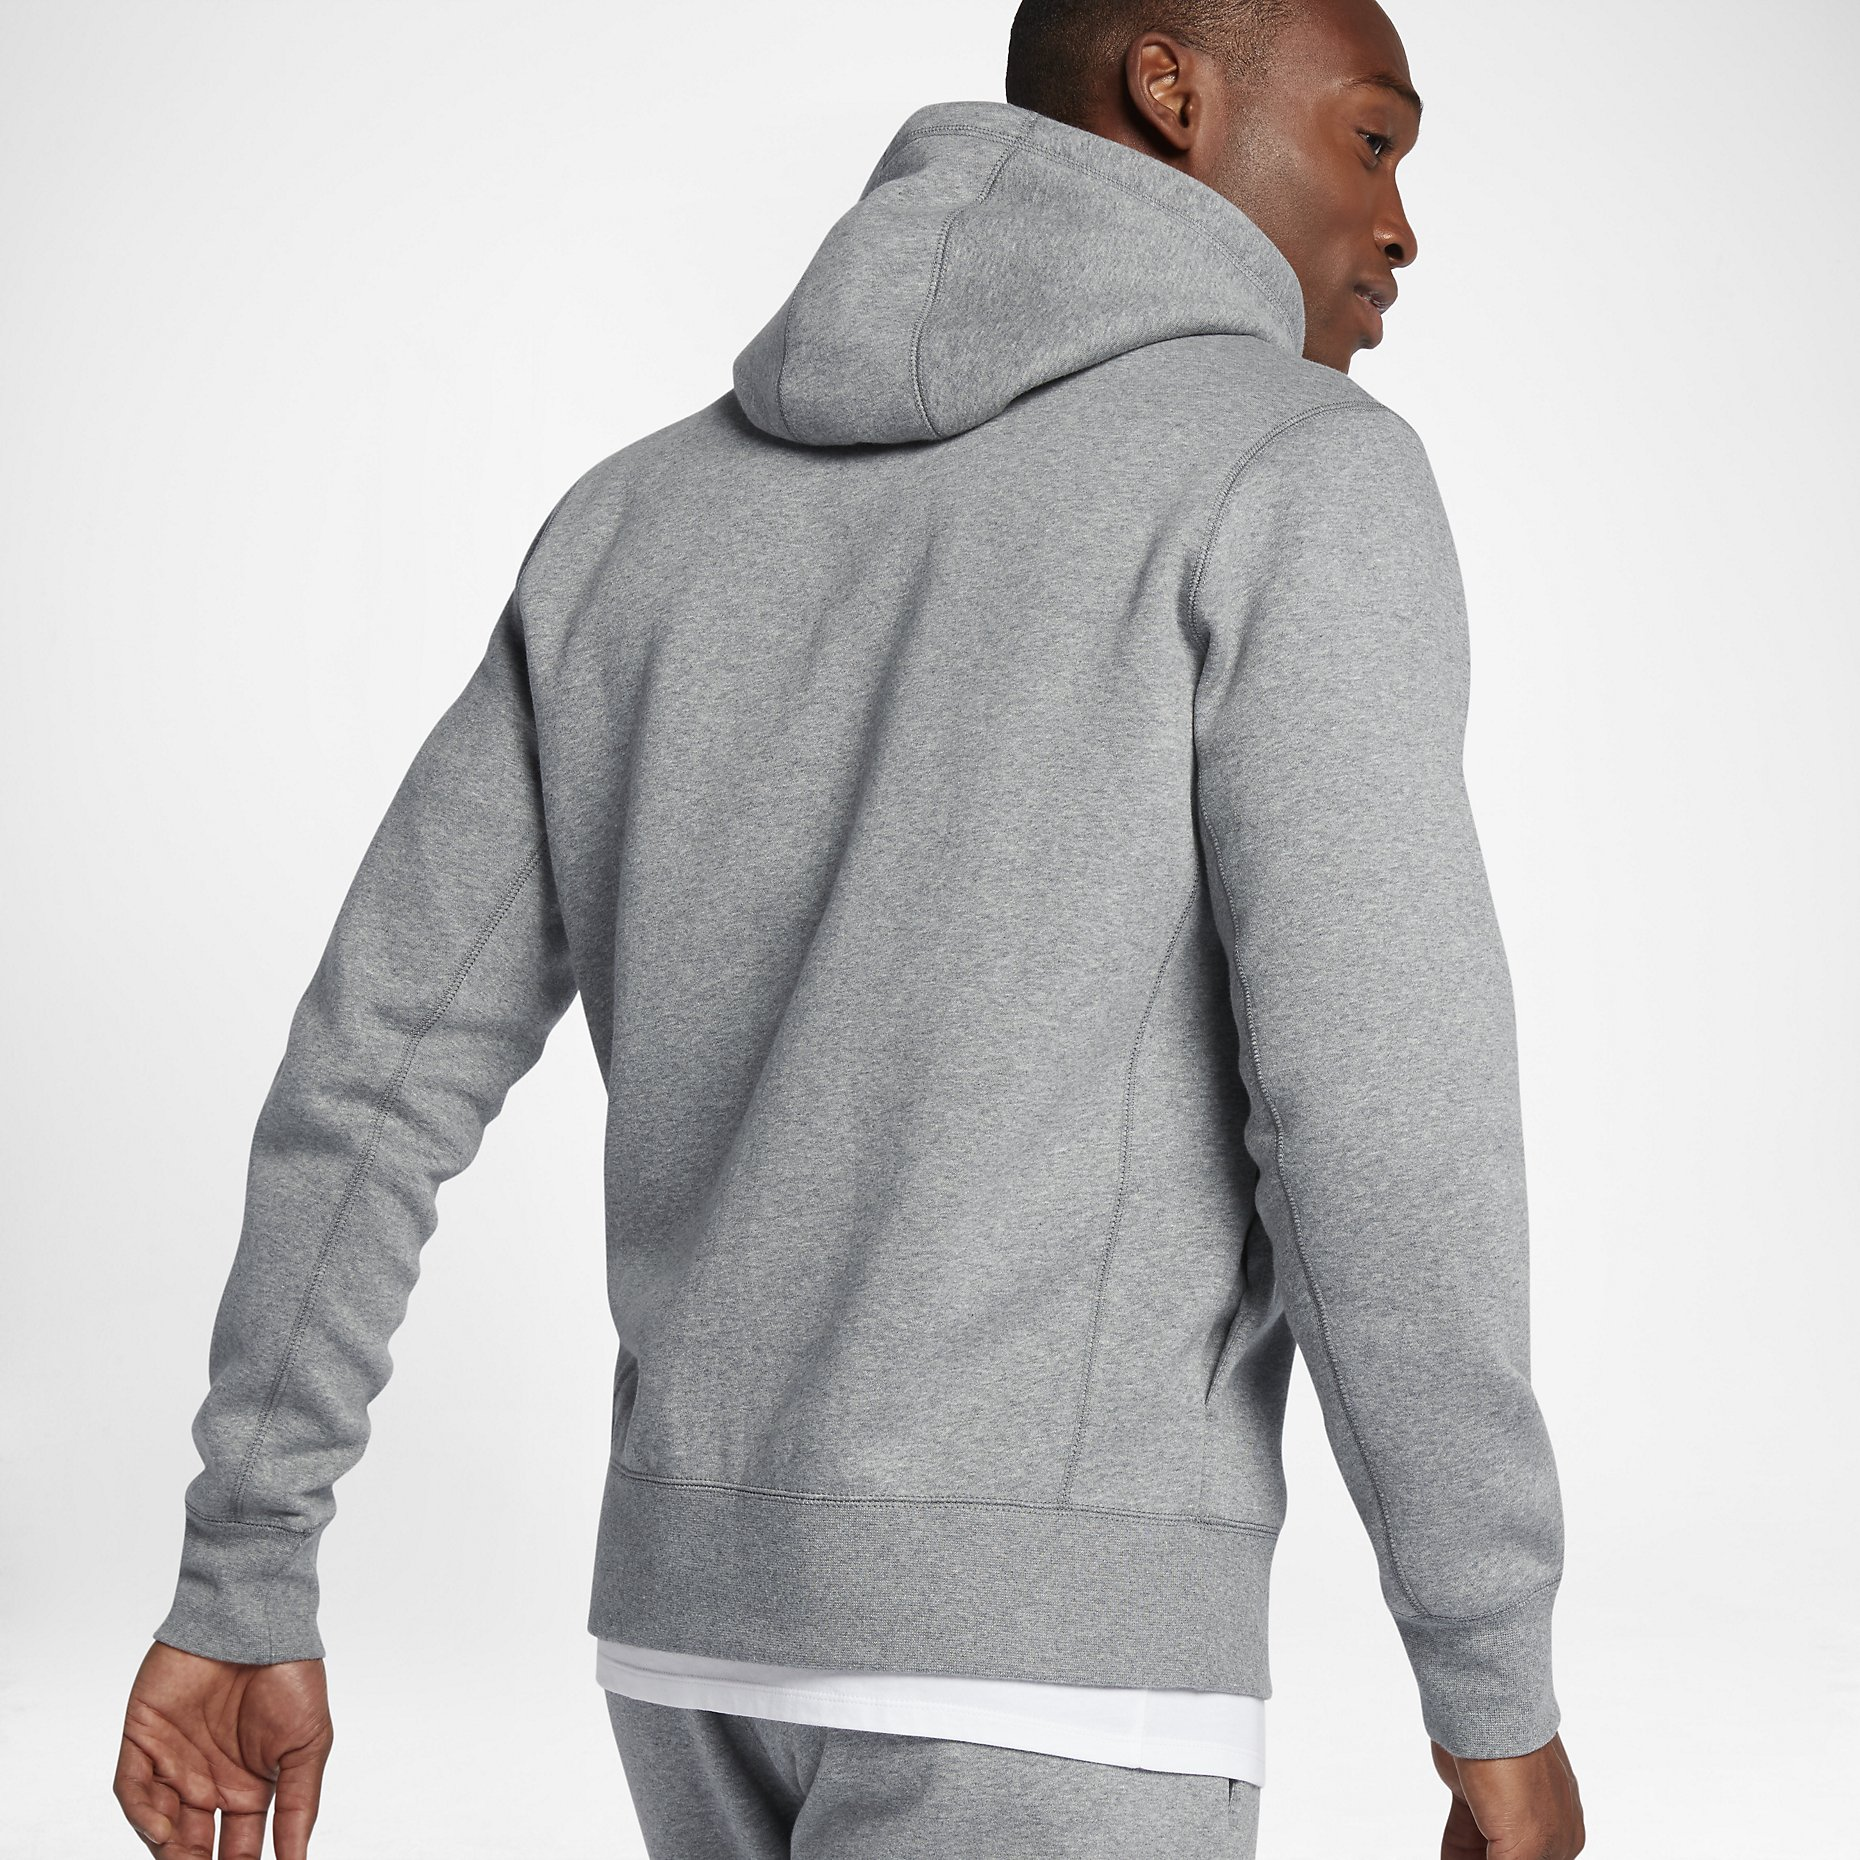 jordan-flight-fleece-mens-full-zip-hoodie (4).jpg